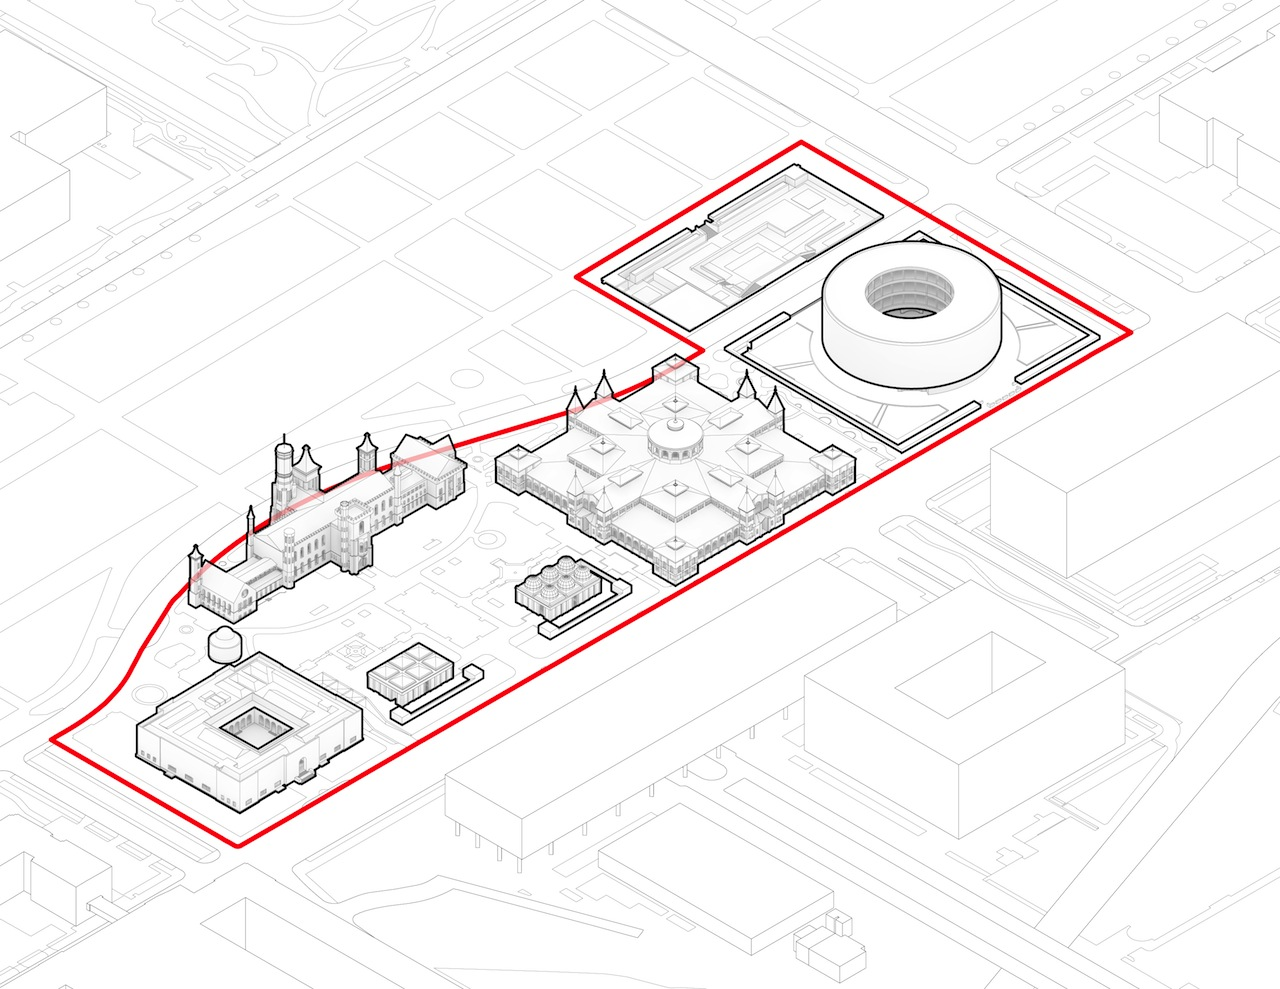 Diagram of the exisiting Smithsonian South Mall campus (Image courtesy of the Smithsonian)